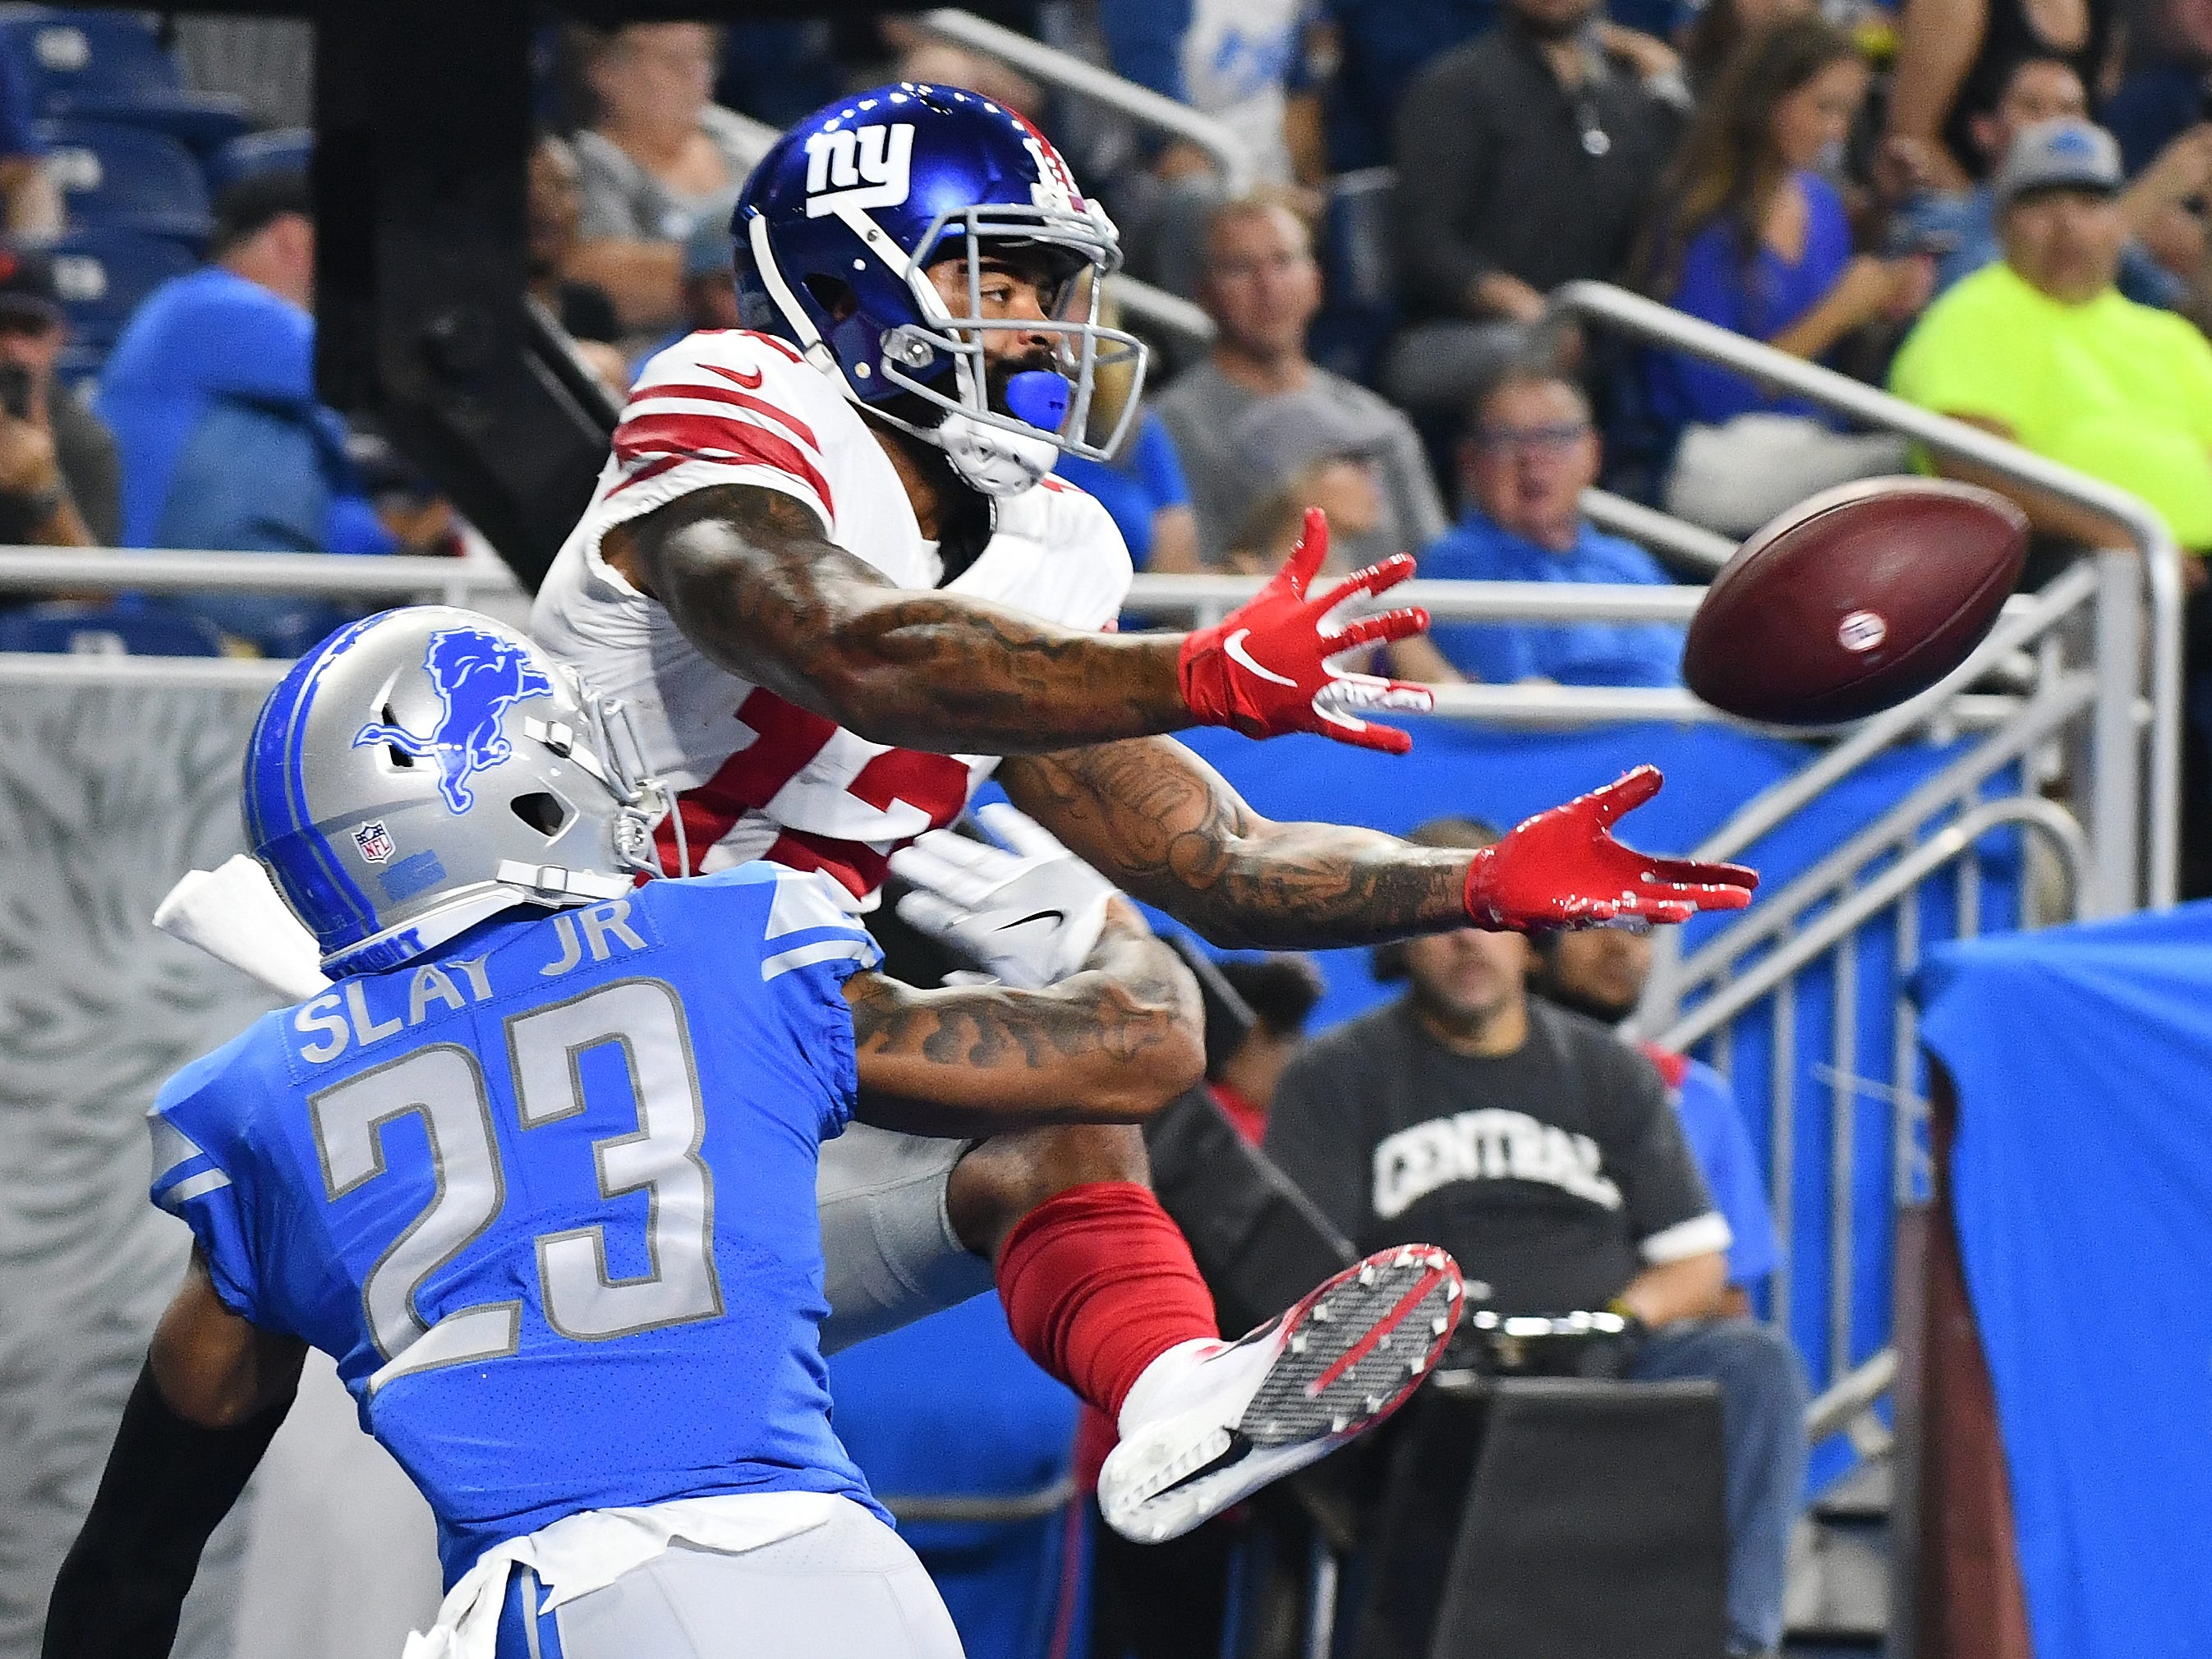 Lions' Darius Slay gets called for a interference penalty in the end zone on this pass intended for Giants' Cody Latimer in the second quarter.